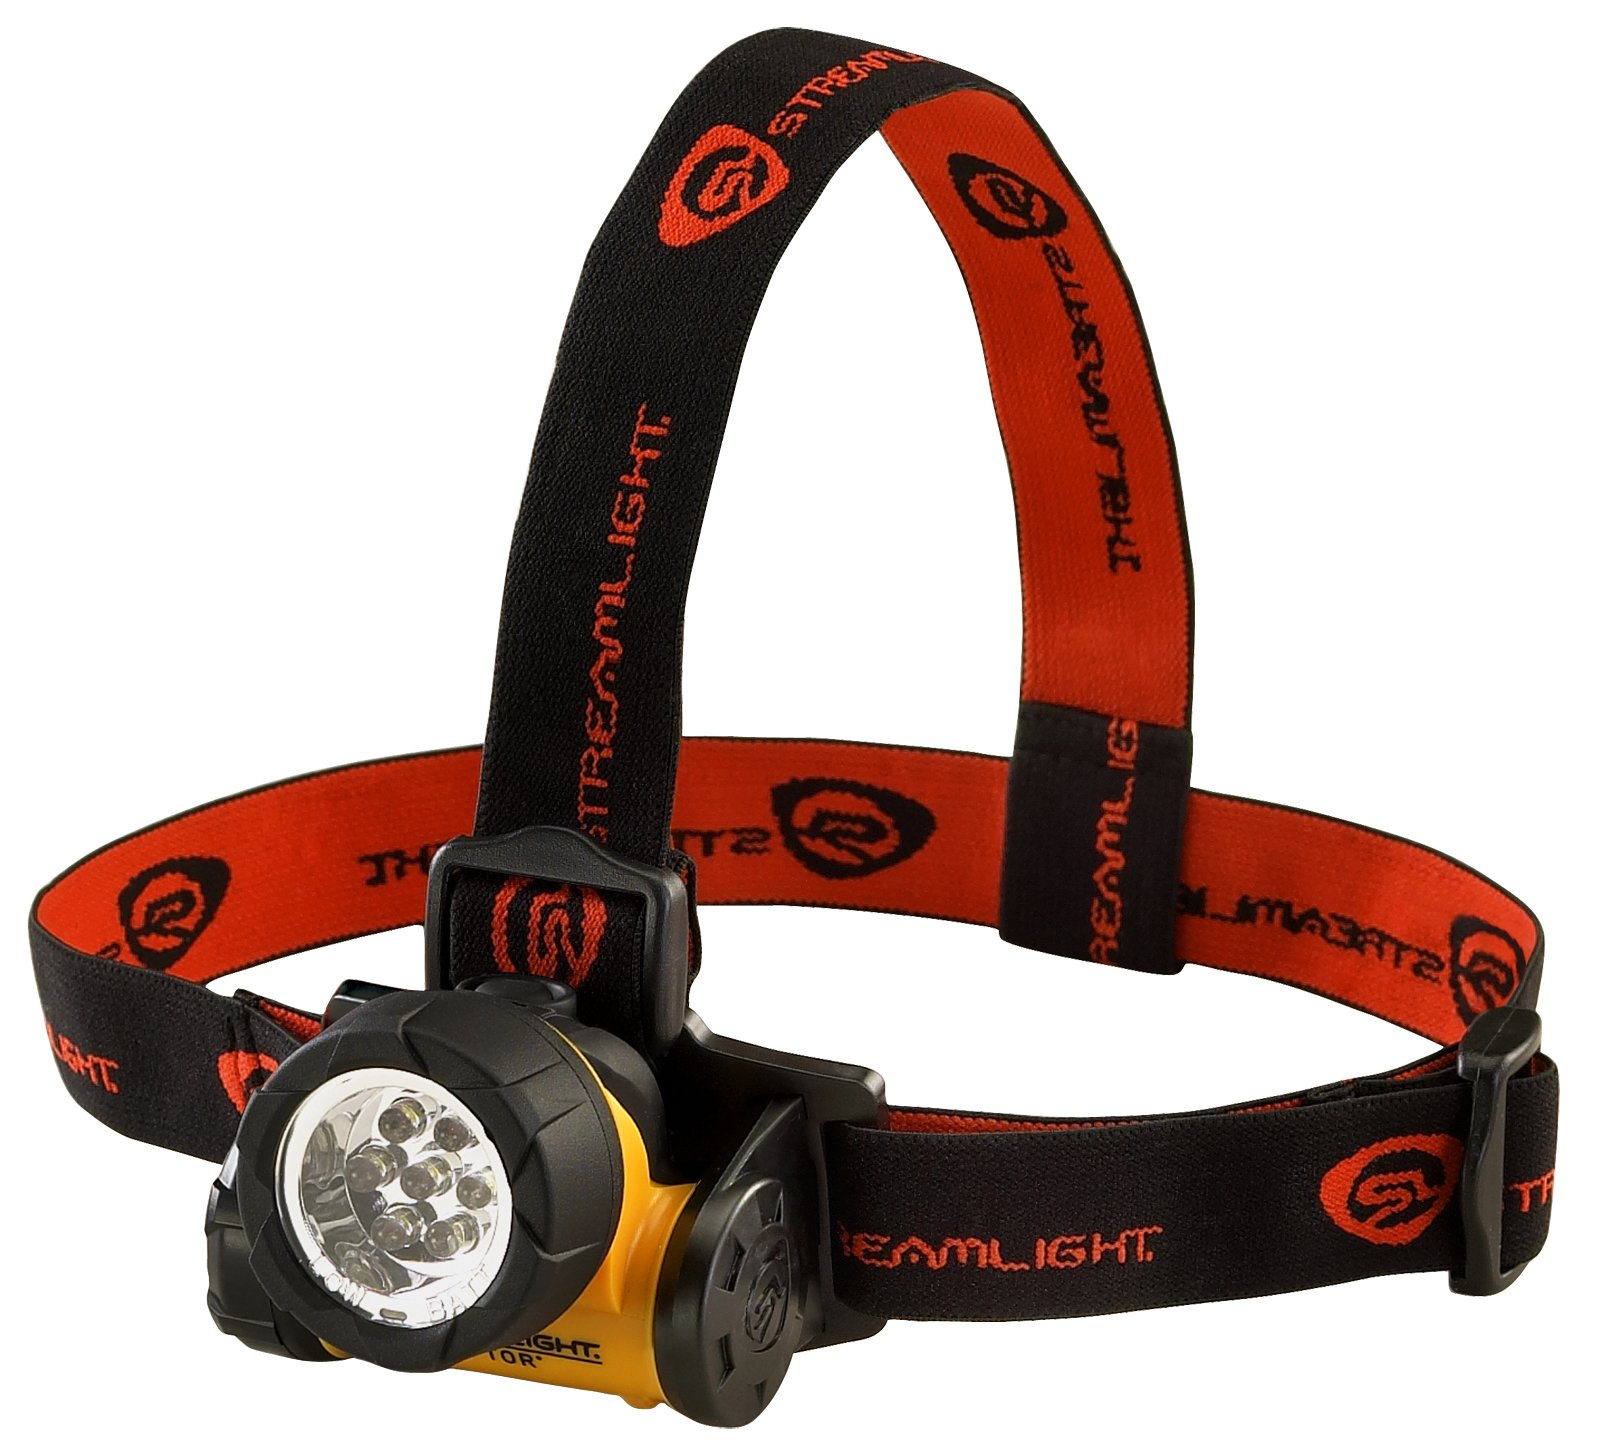 Streamlight 61052 Septor LED Headlamp with Strap - 120 Lumens by Streamlight